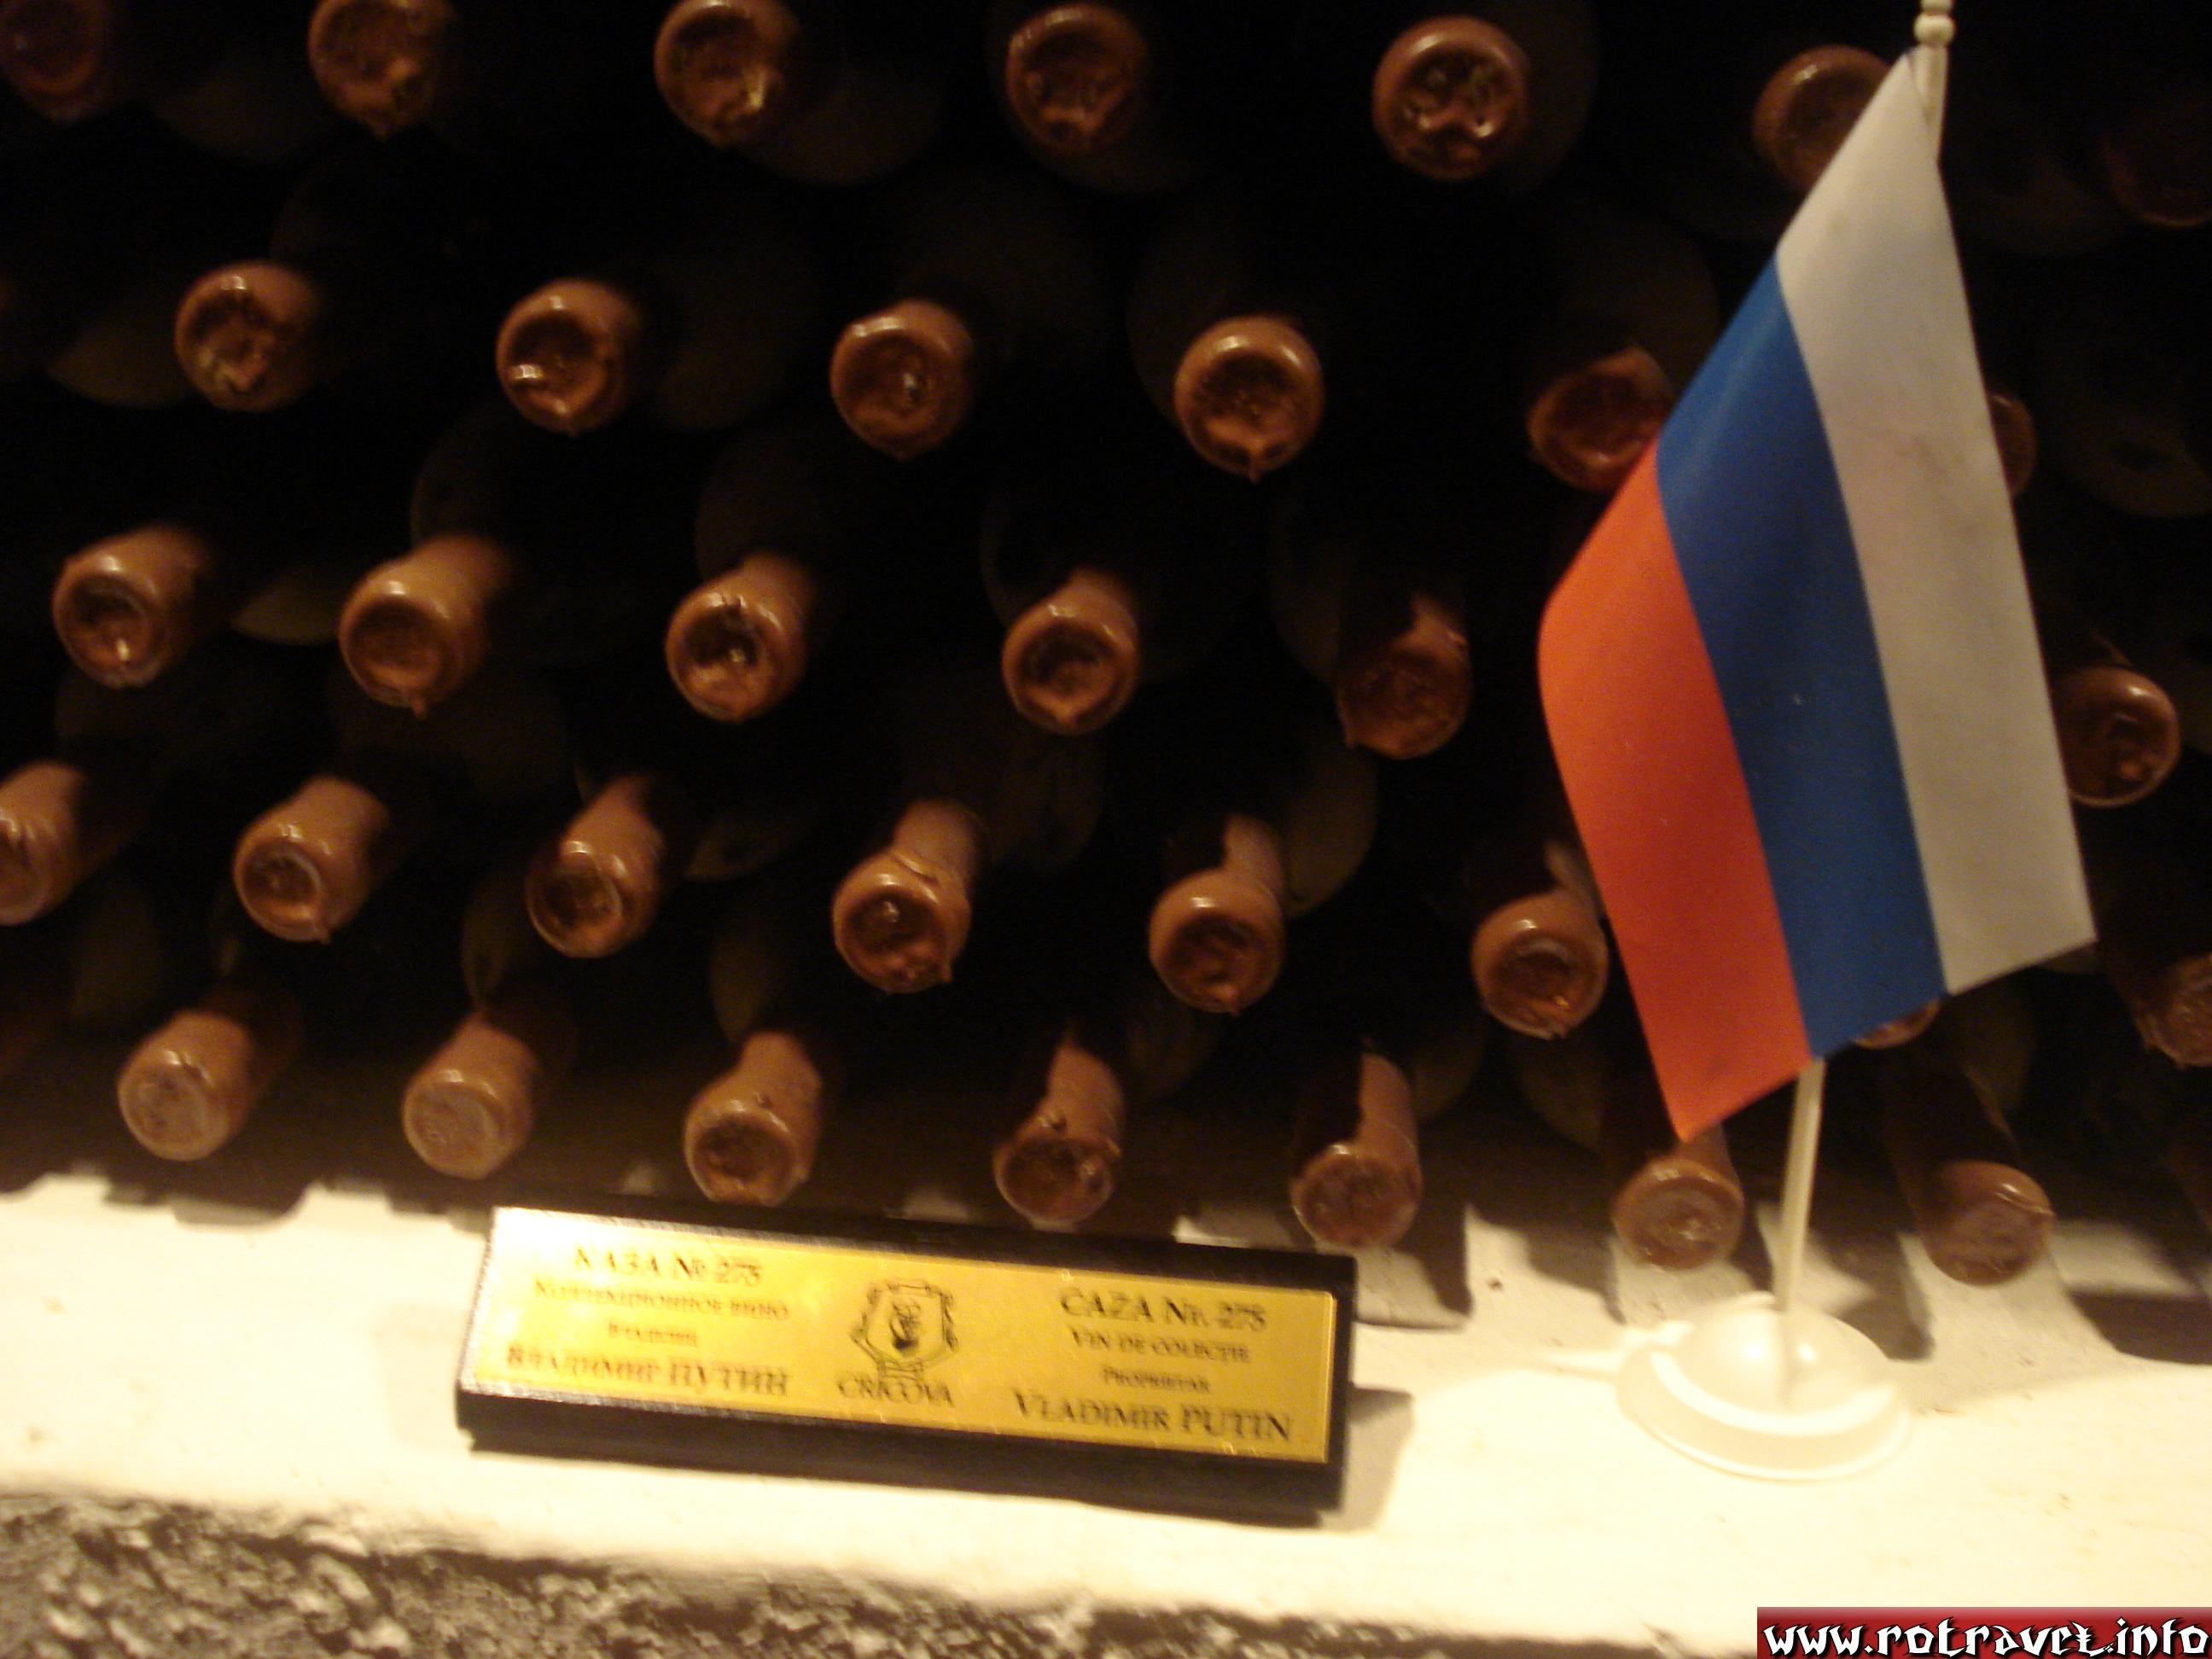 The personal wine collection of Vladimir Putin.